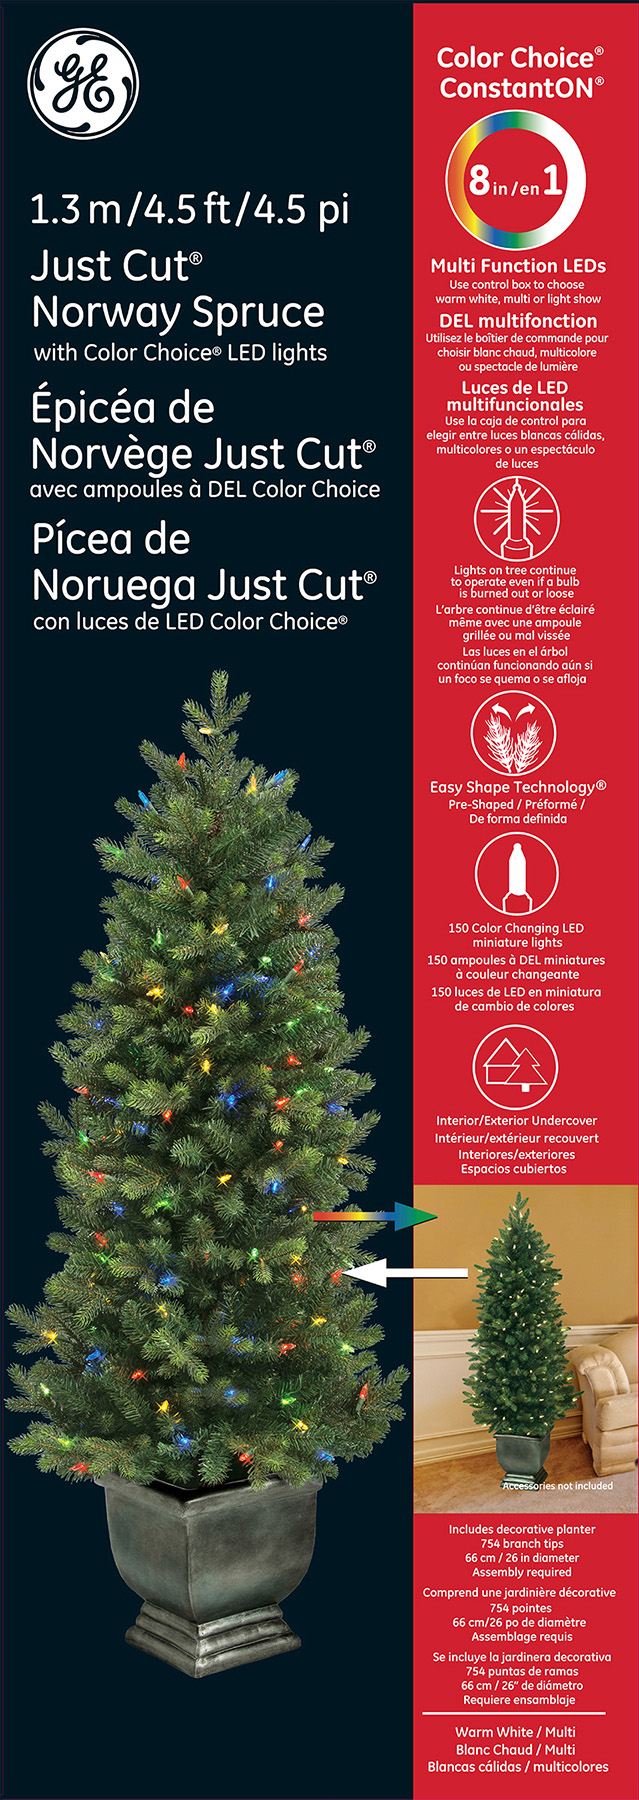 00123 - GE Just Cut® Norway Spruce, 4.5 ft., Color Choice® LED, 150ct 7mm Lights, Multi/Warm ...